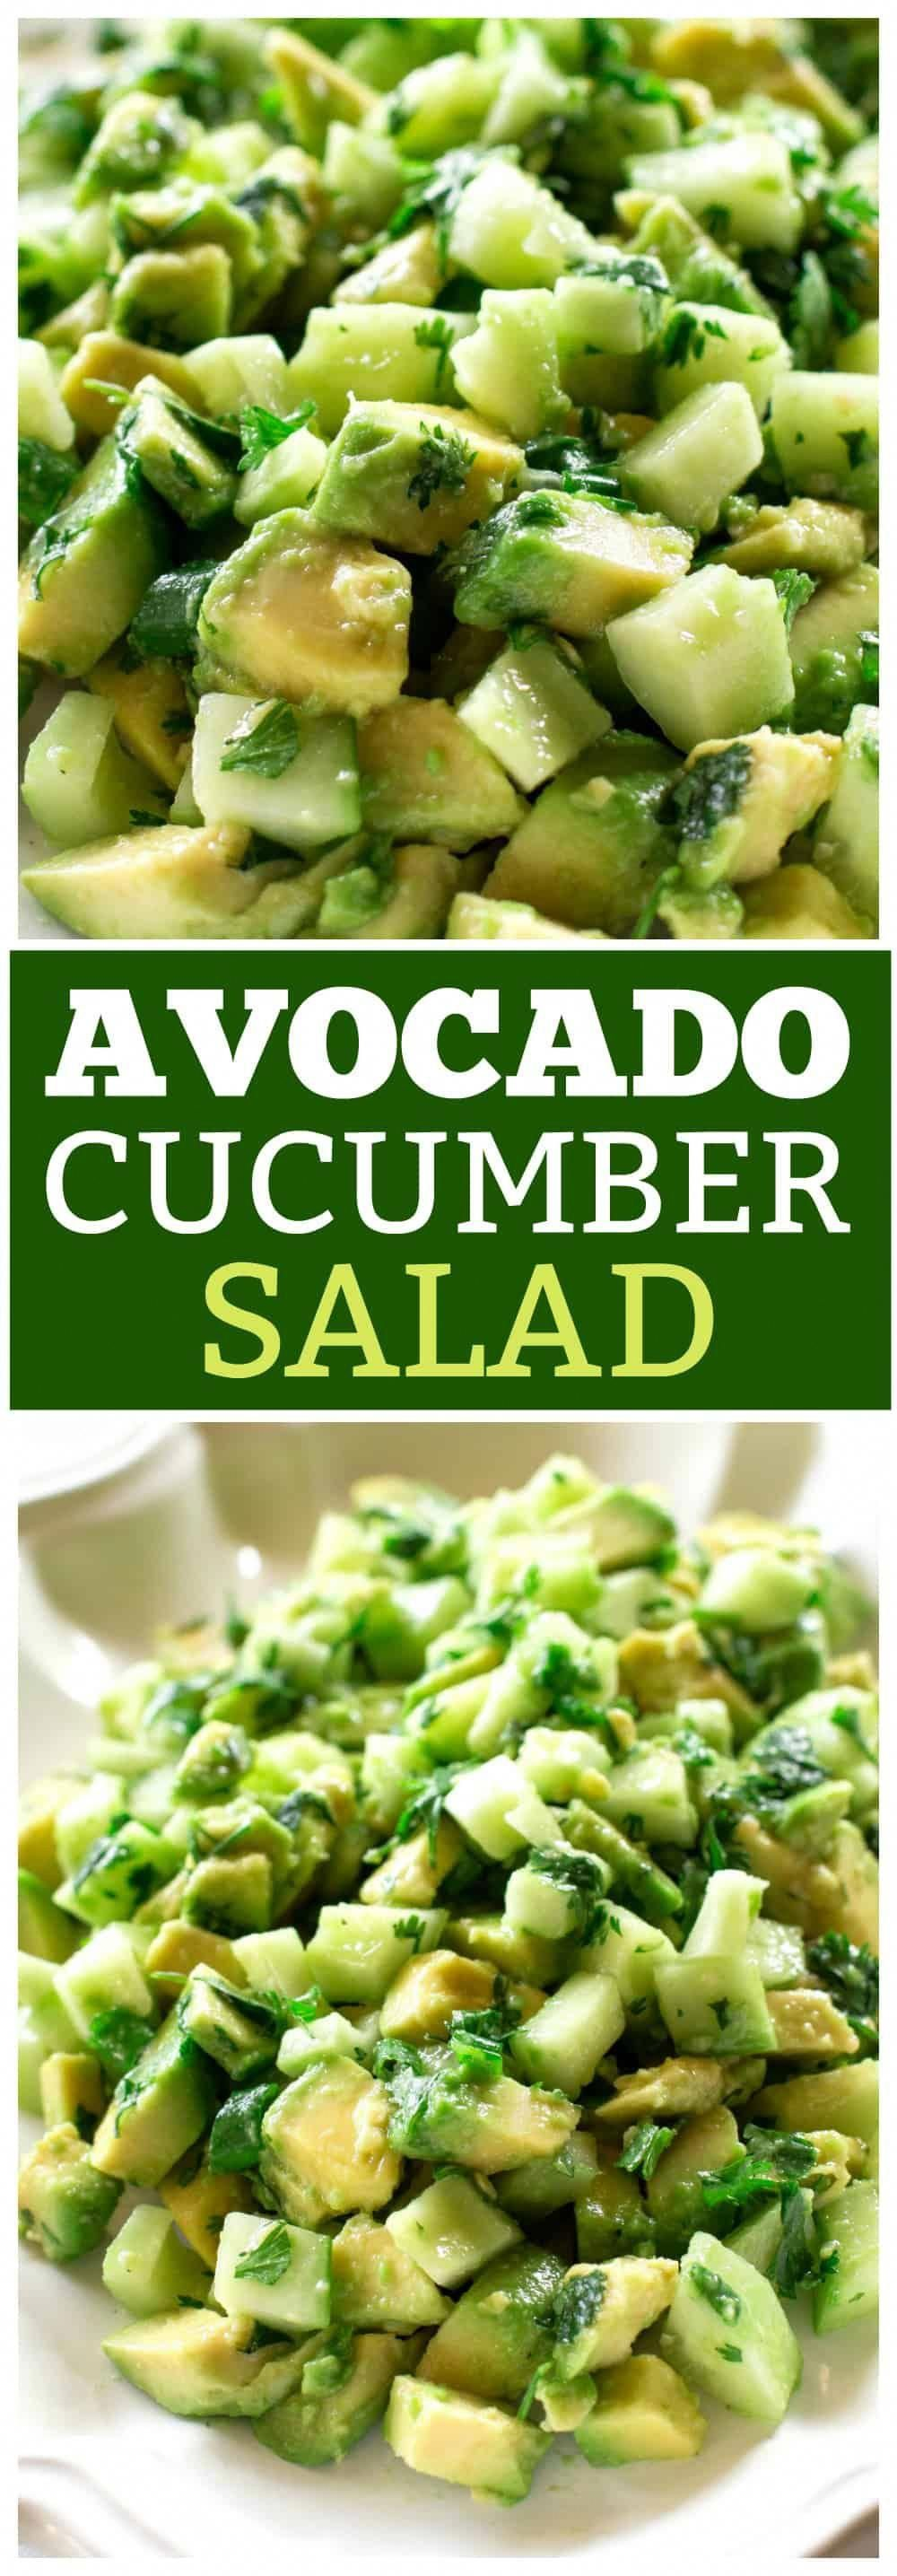 This Avocado Cucumber salad has a citrus dressing with cilantro and garlic. A great side dish to an